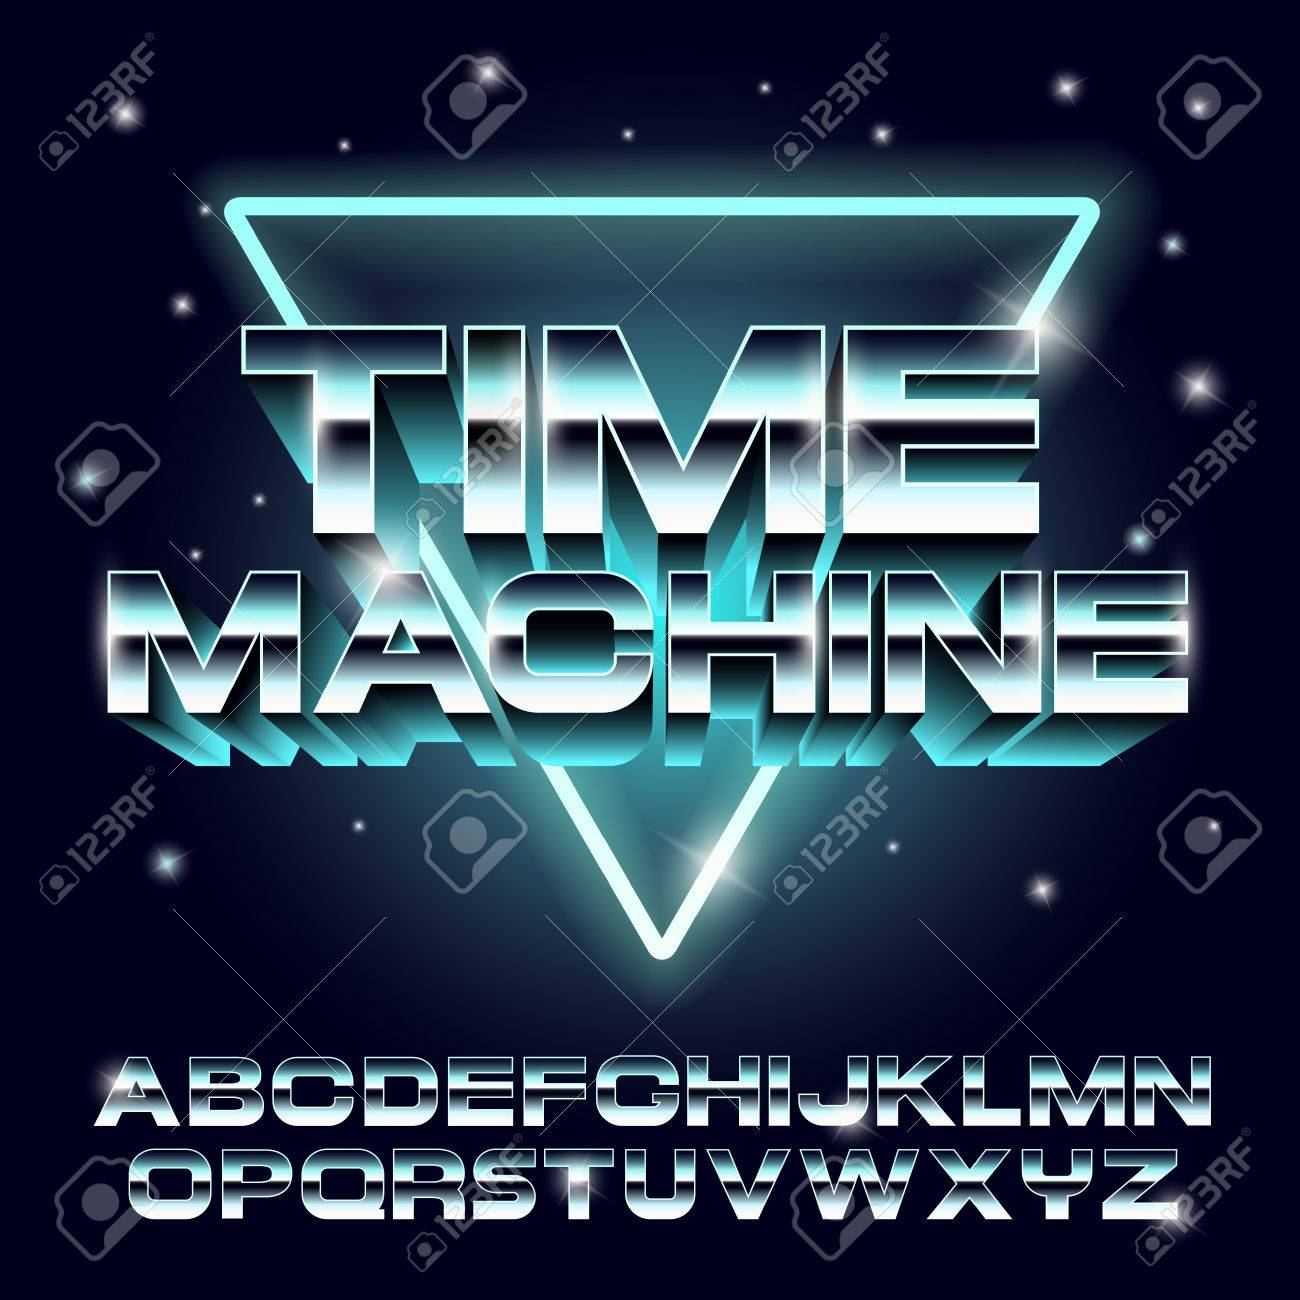 Retro font in the style of the 80s  metal font  vector illustration